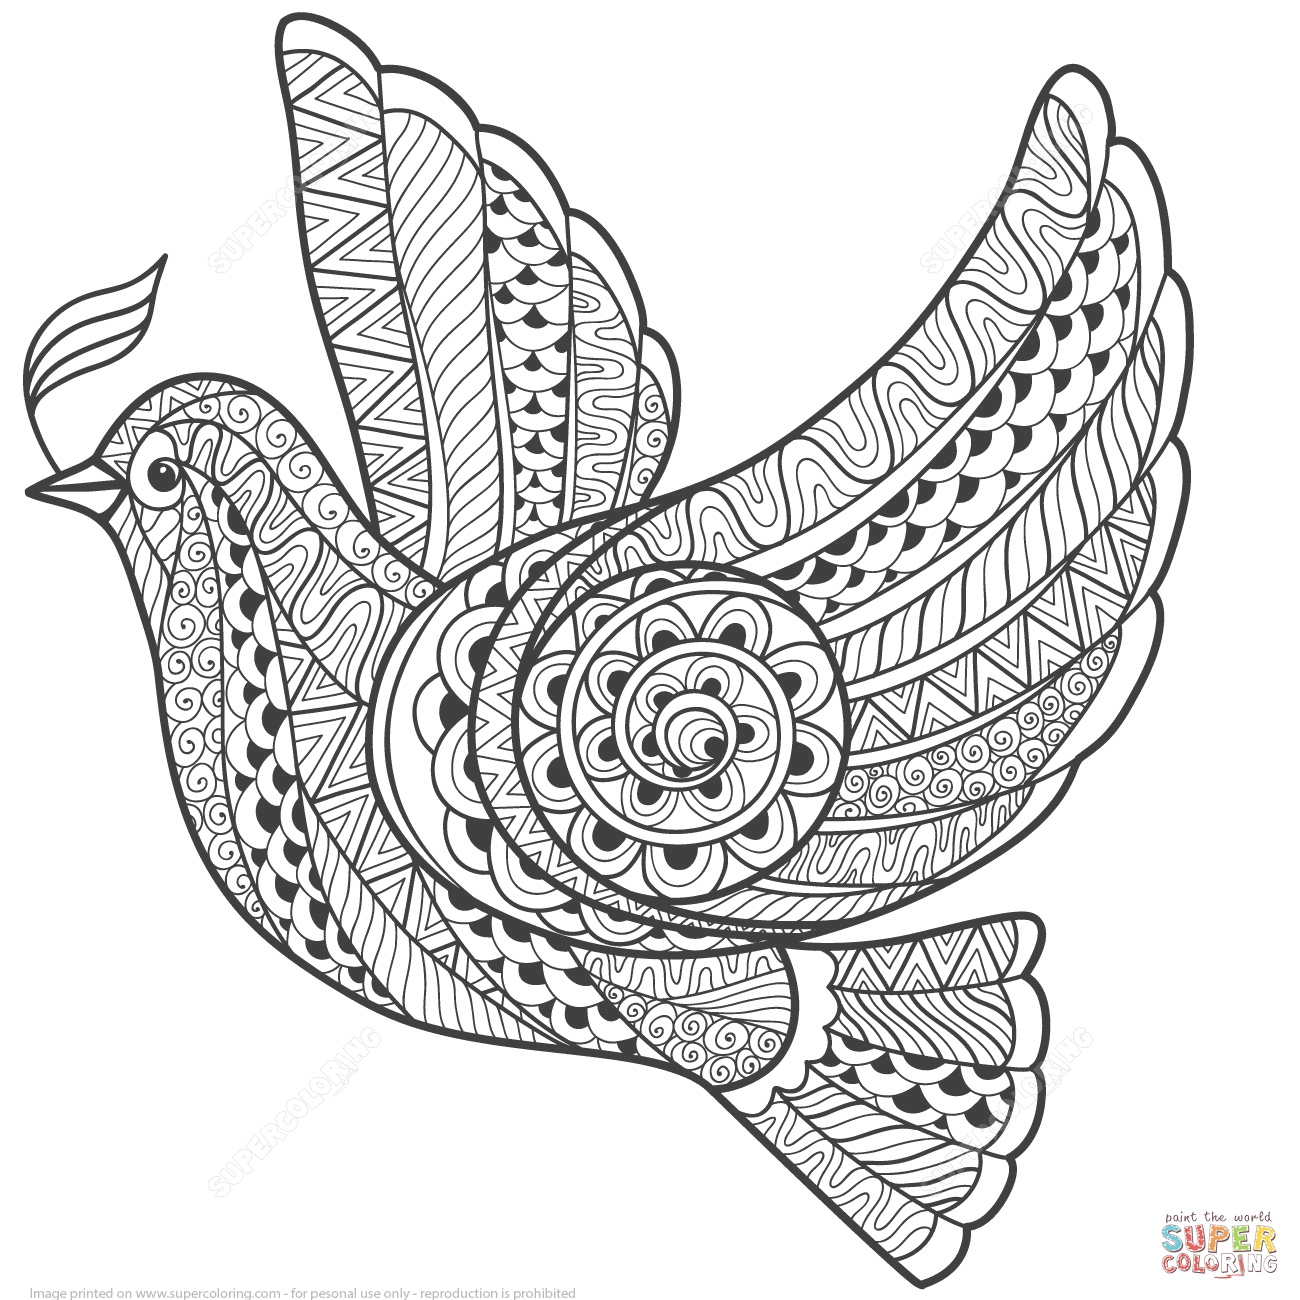 free zentangle coloring pages coloring pages zentangle free download best coloring zentangle coloring free pages